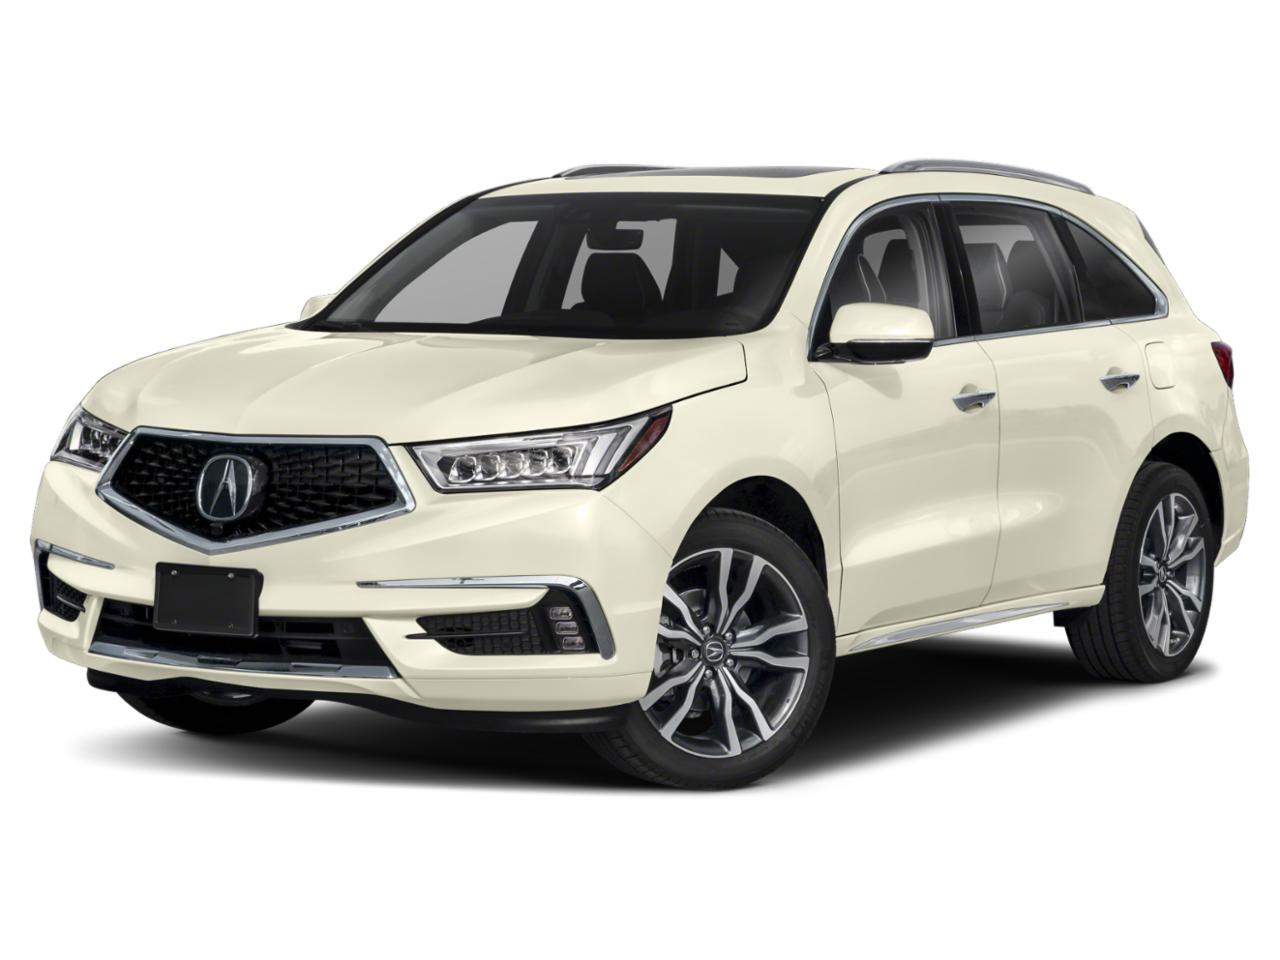 2019 Acura MDX Vehicle Photo in Appleton, WI 54913